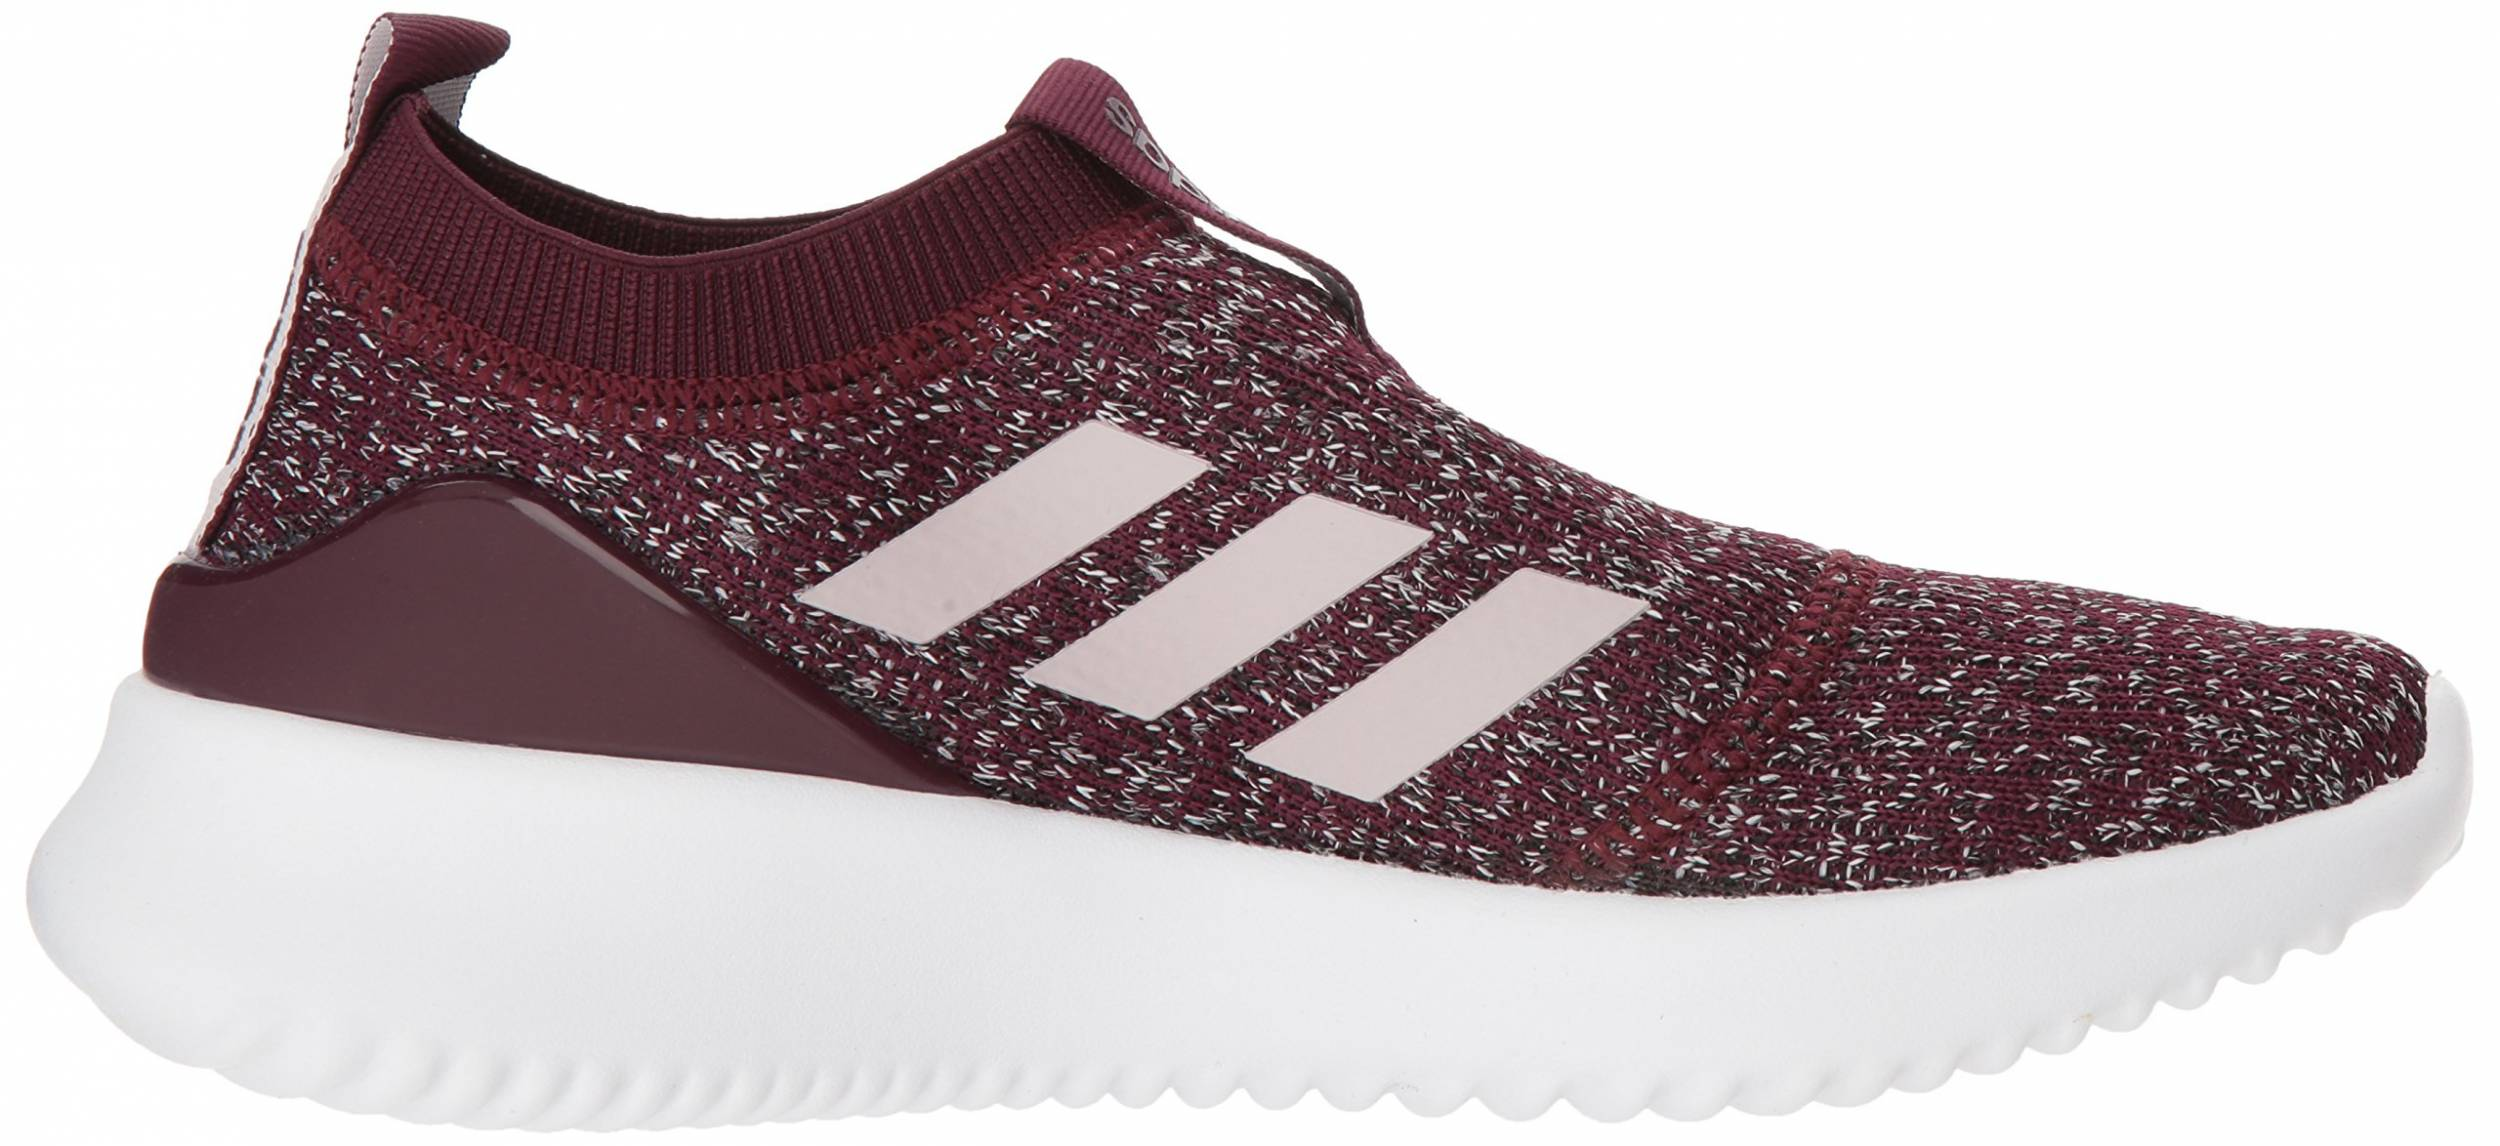 Review of Adidas Ultimafusion